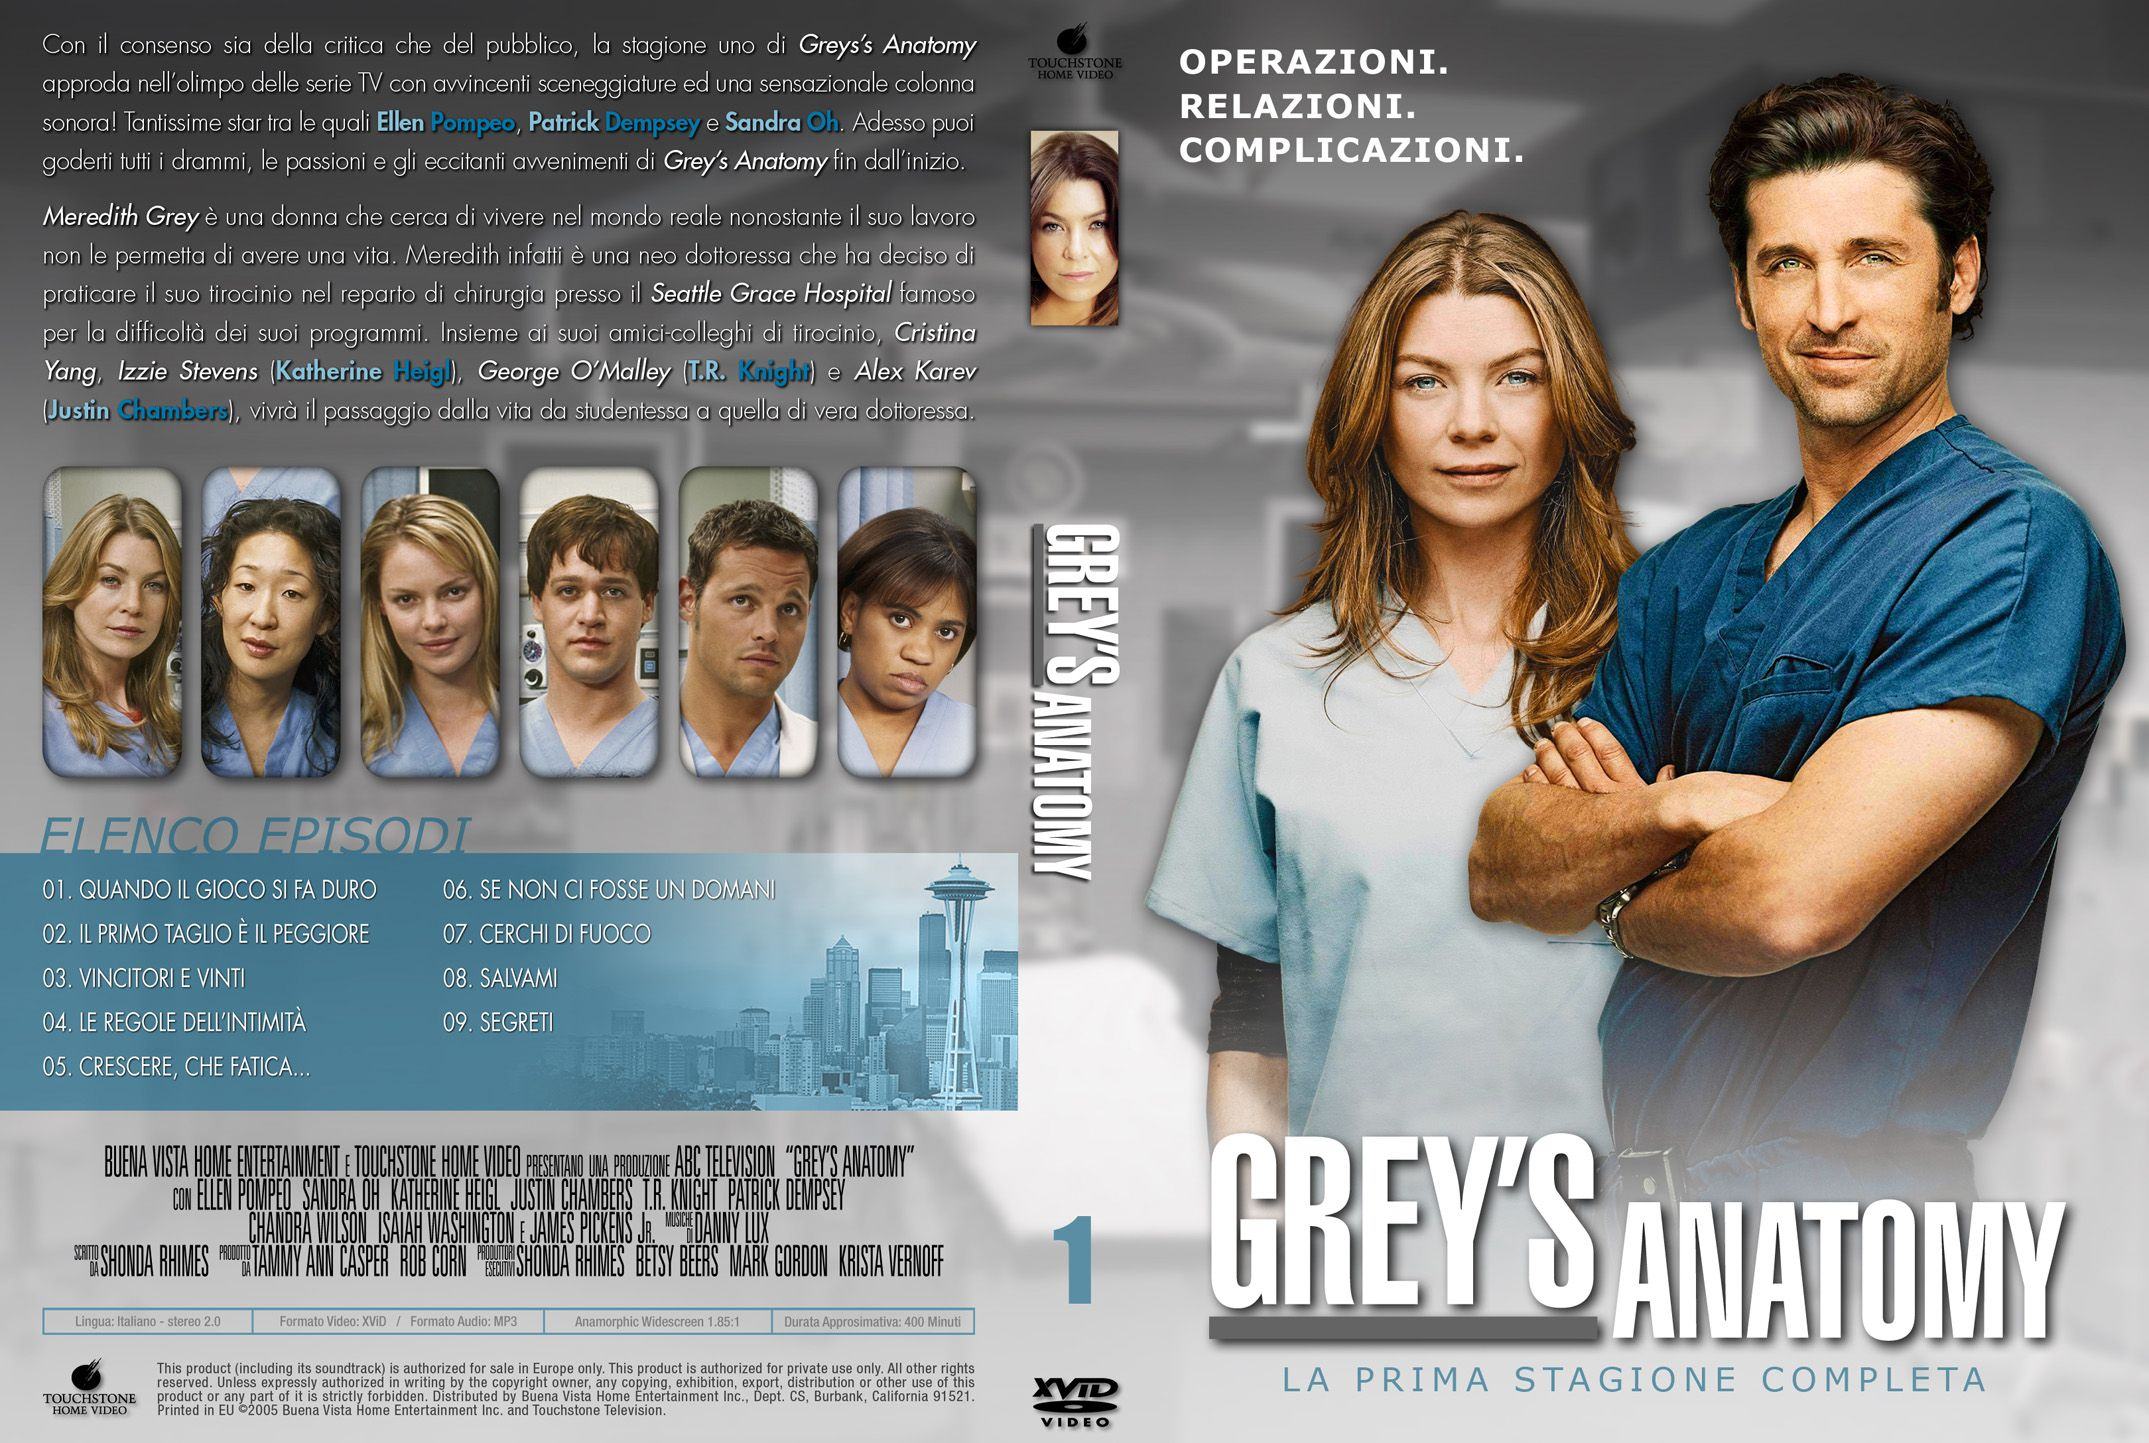 Front Dvd Covers Greys Anatomy Sceneups